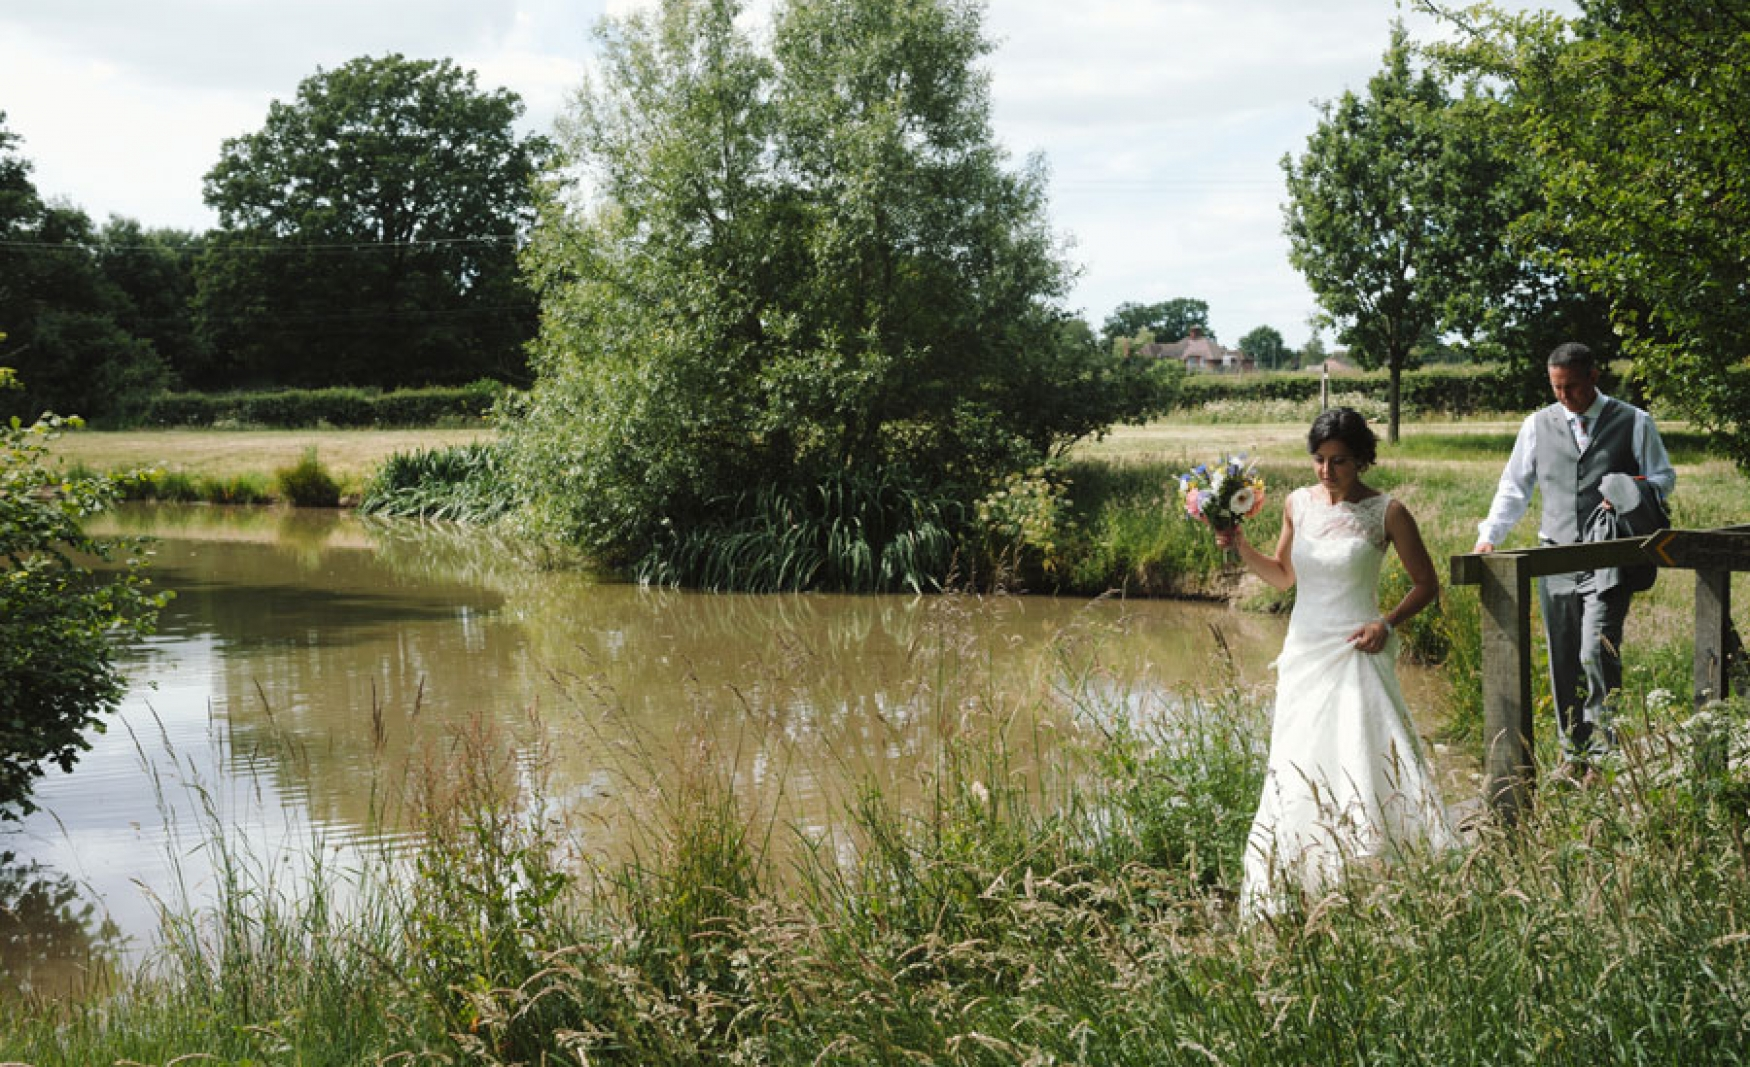 fiesta-fields-outdoor-wedding-events-company-tipi-surrey-sussex-maplehurst-farm-nuthurst-5